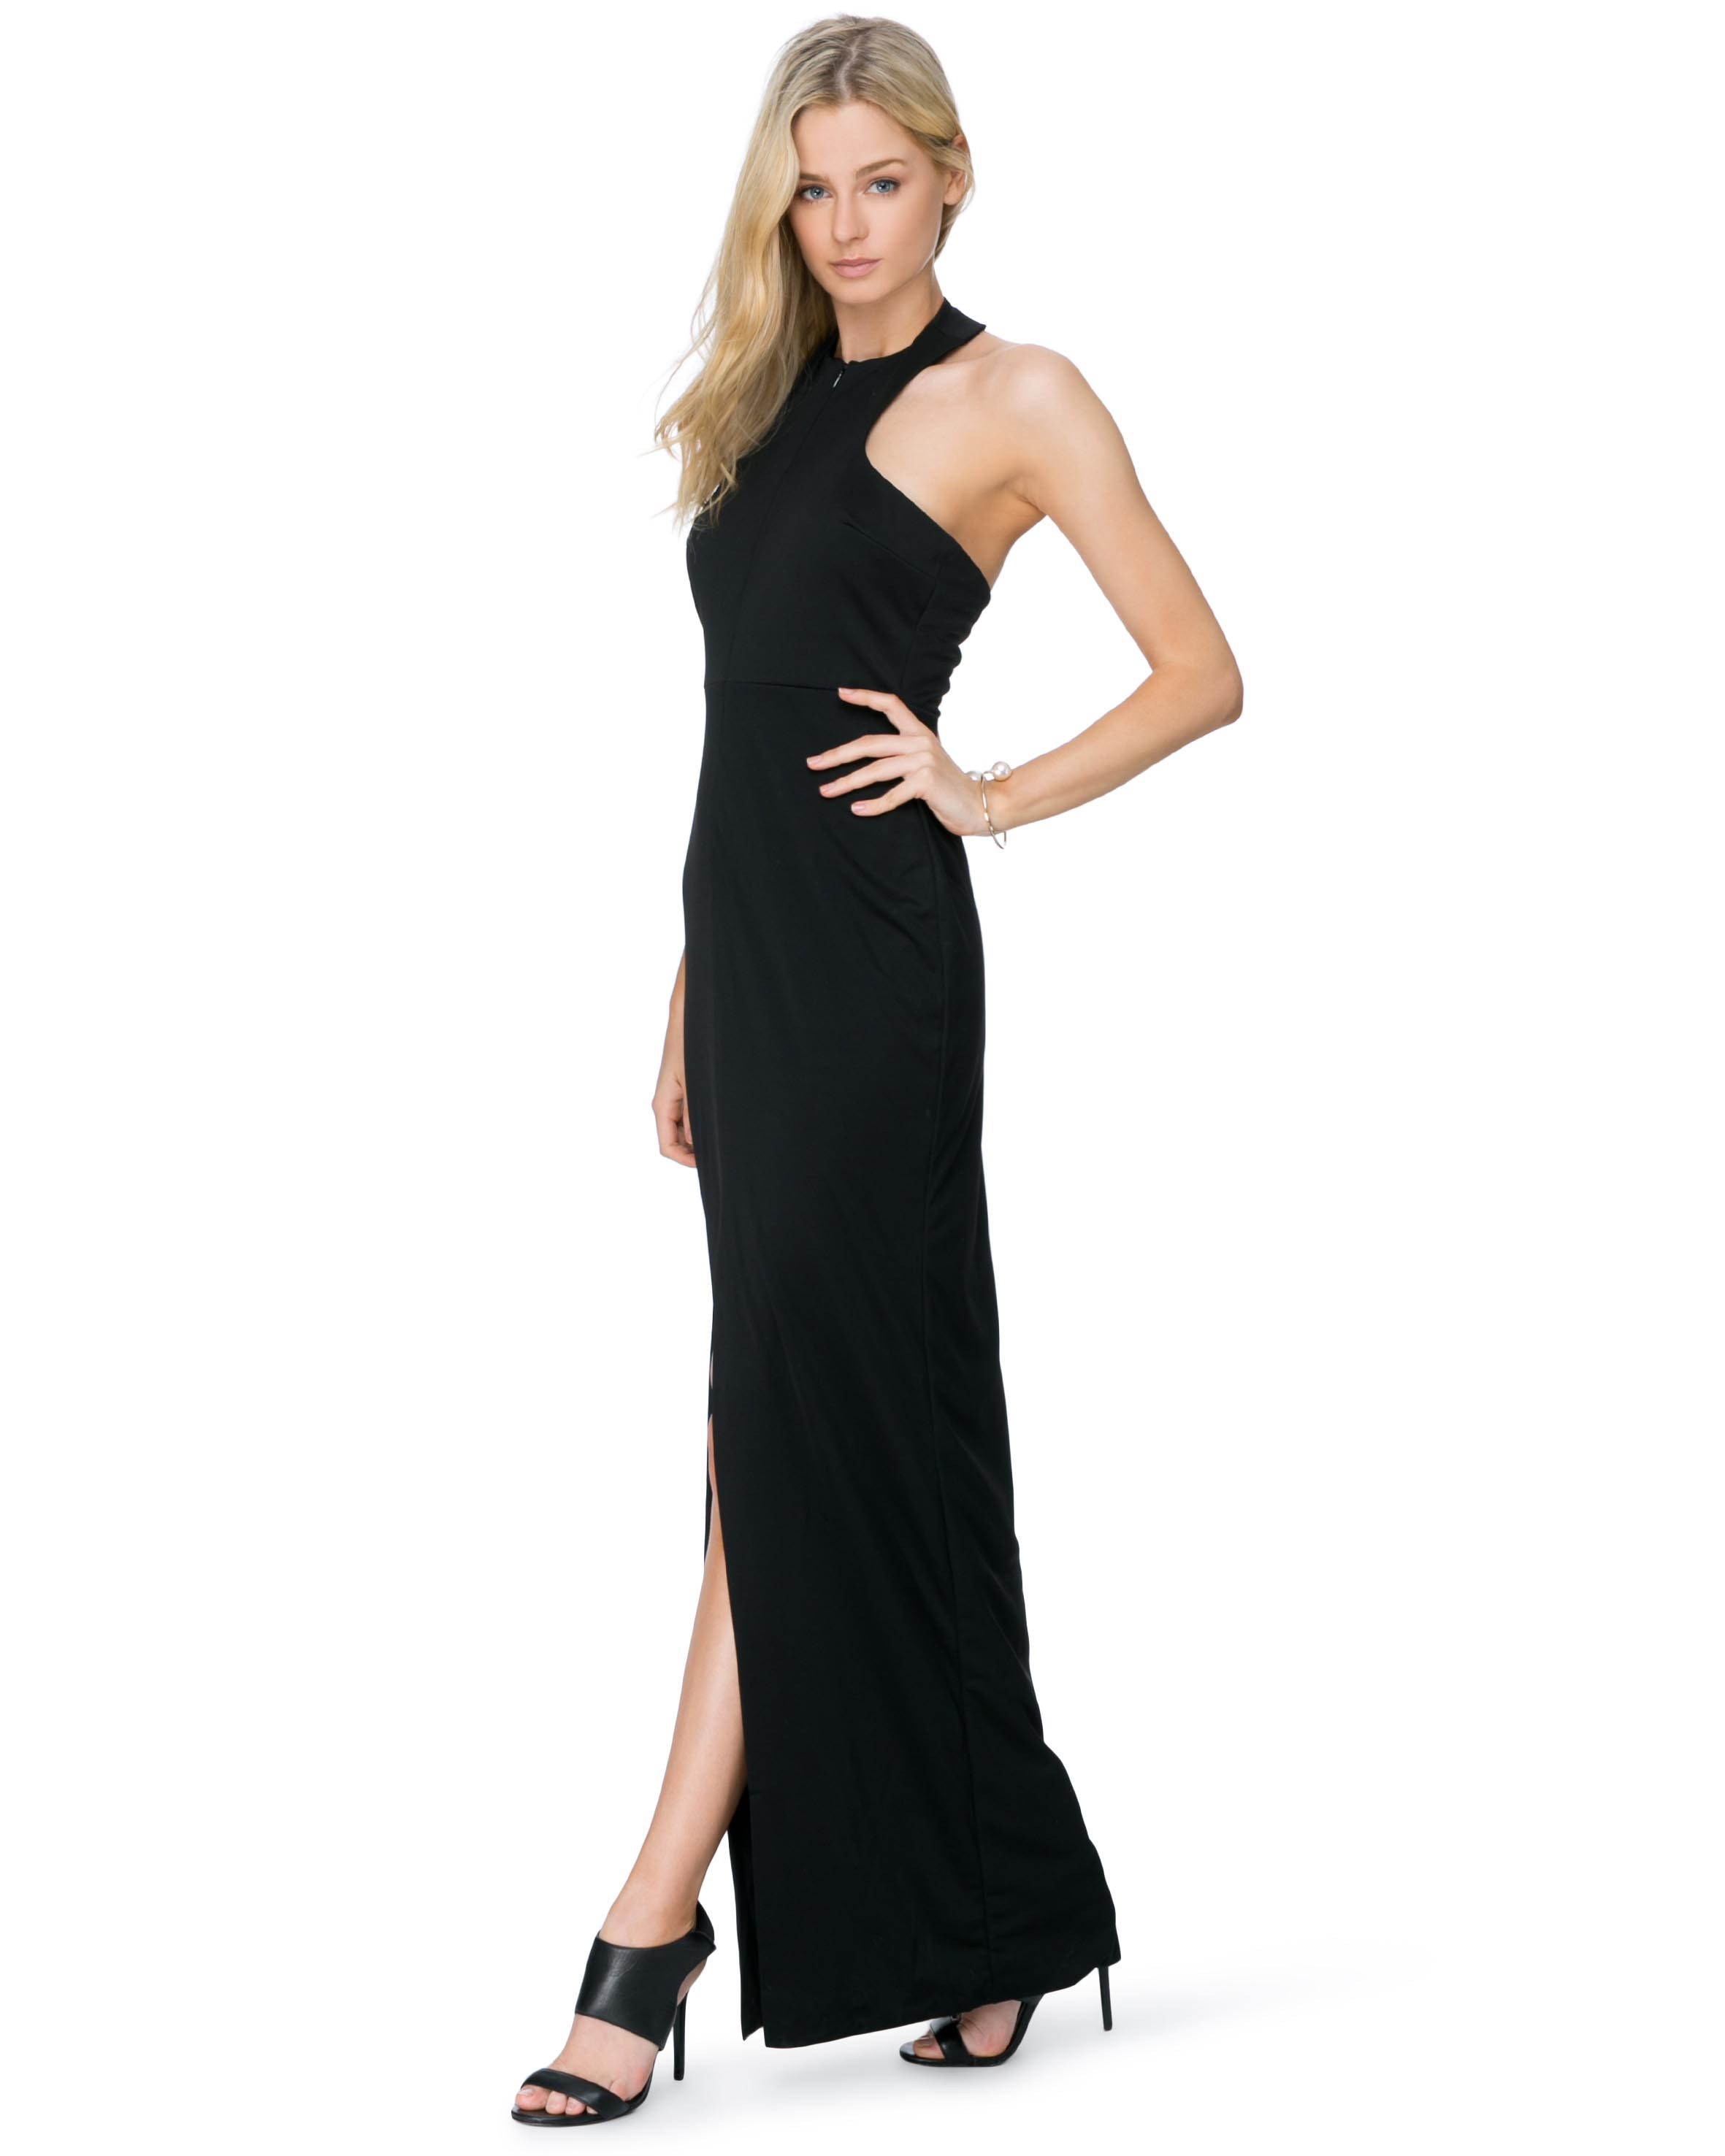 Cheap Prom Dresses 2013, Cheap Prom Dresses, Buy Cheap Prom Gowns